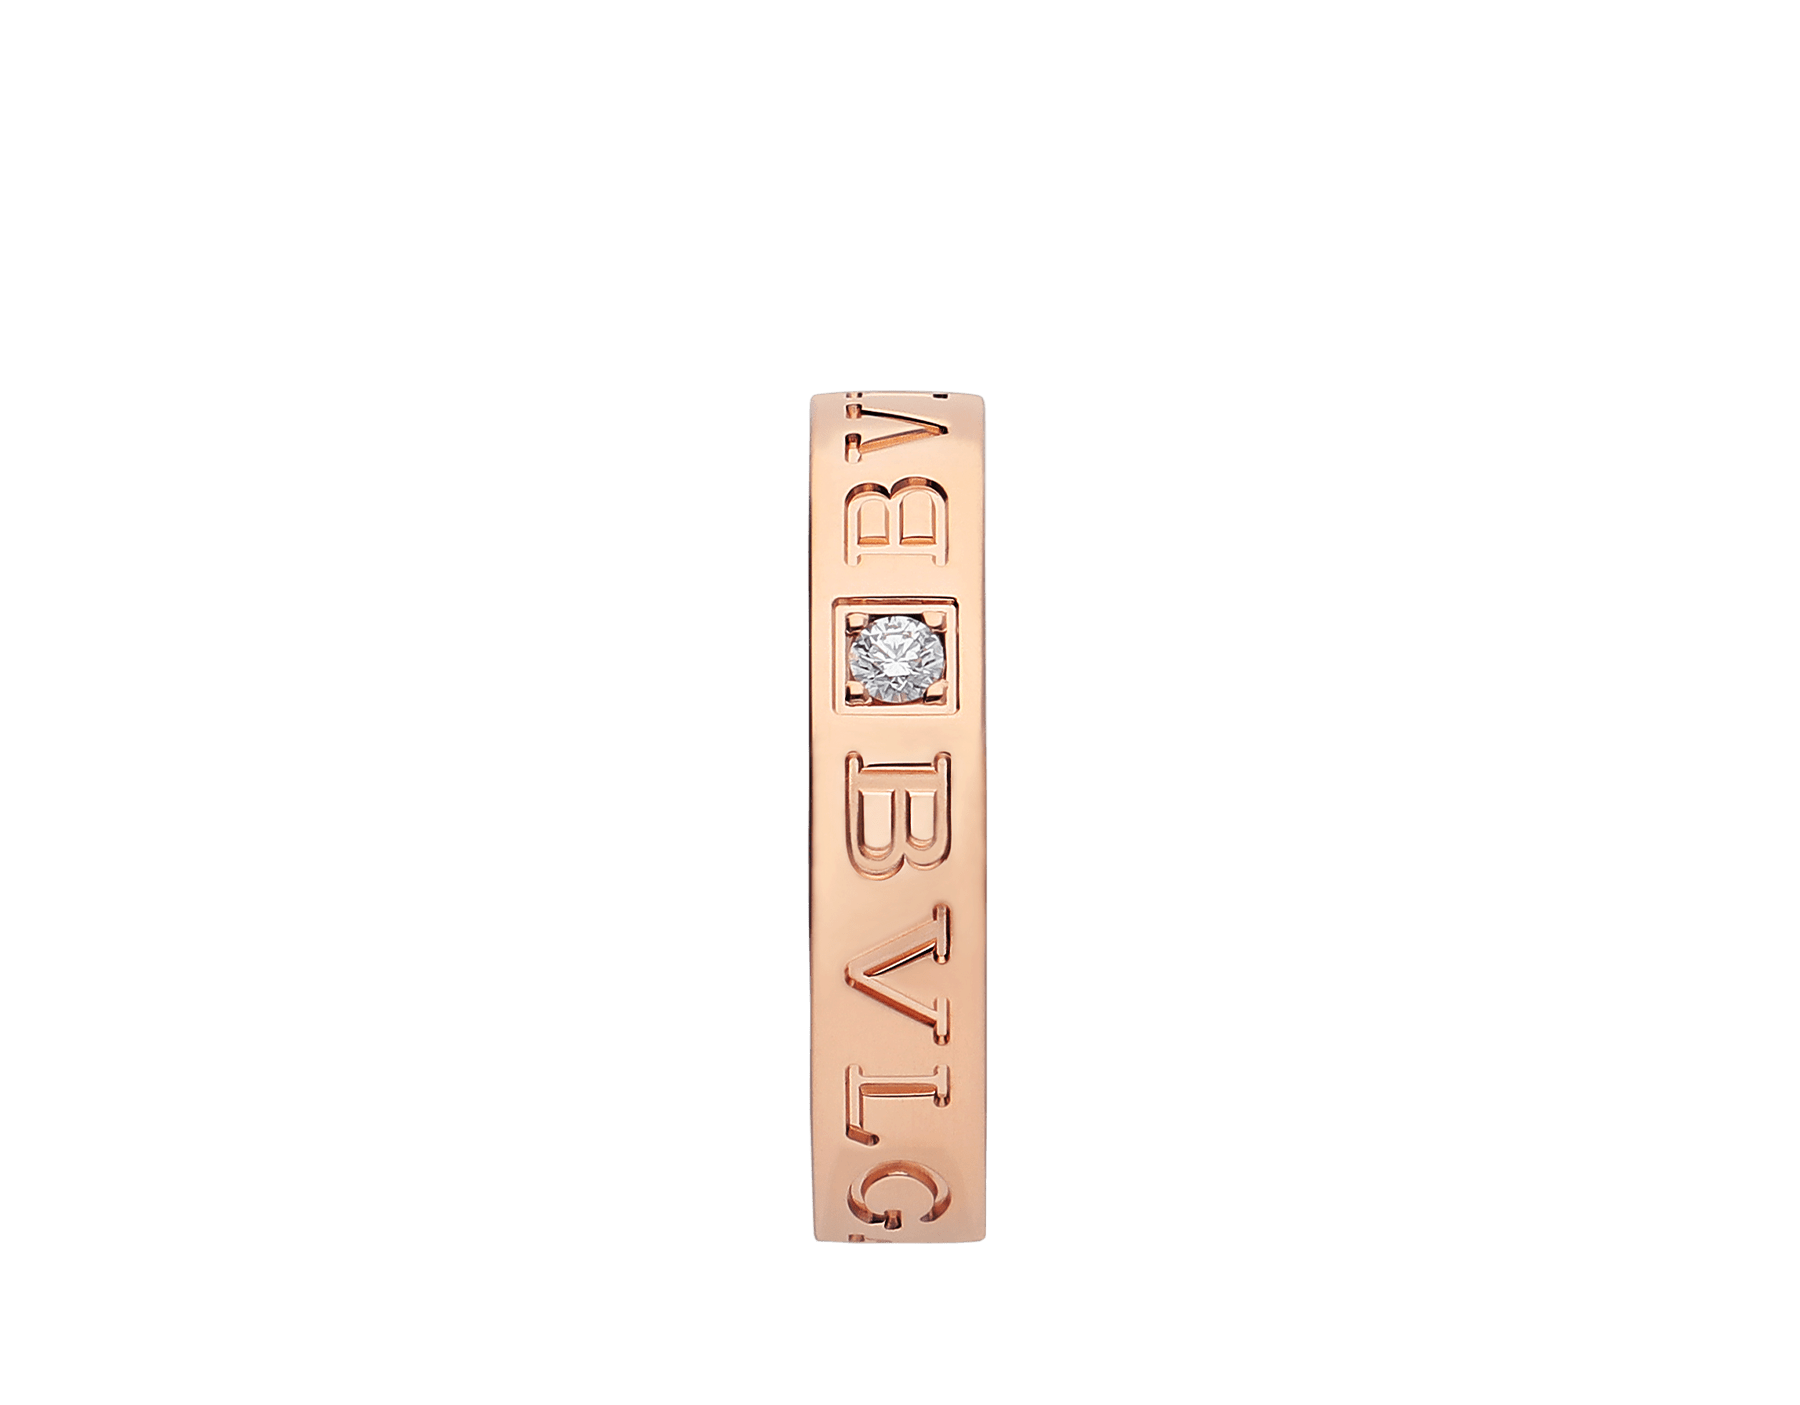 BVLGARI BVLGARI 18 kt rose gold ring set with a diamond AN854185 image 3